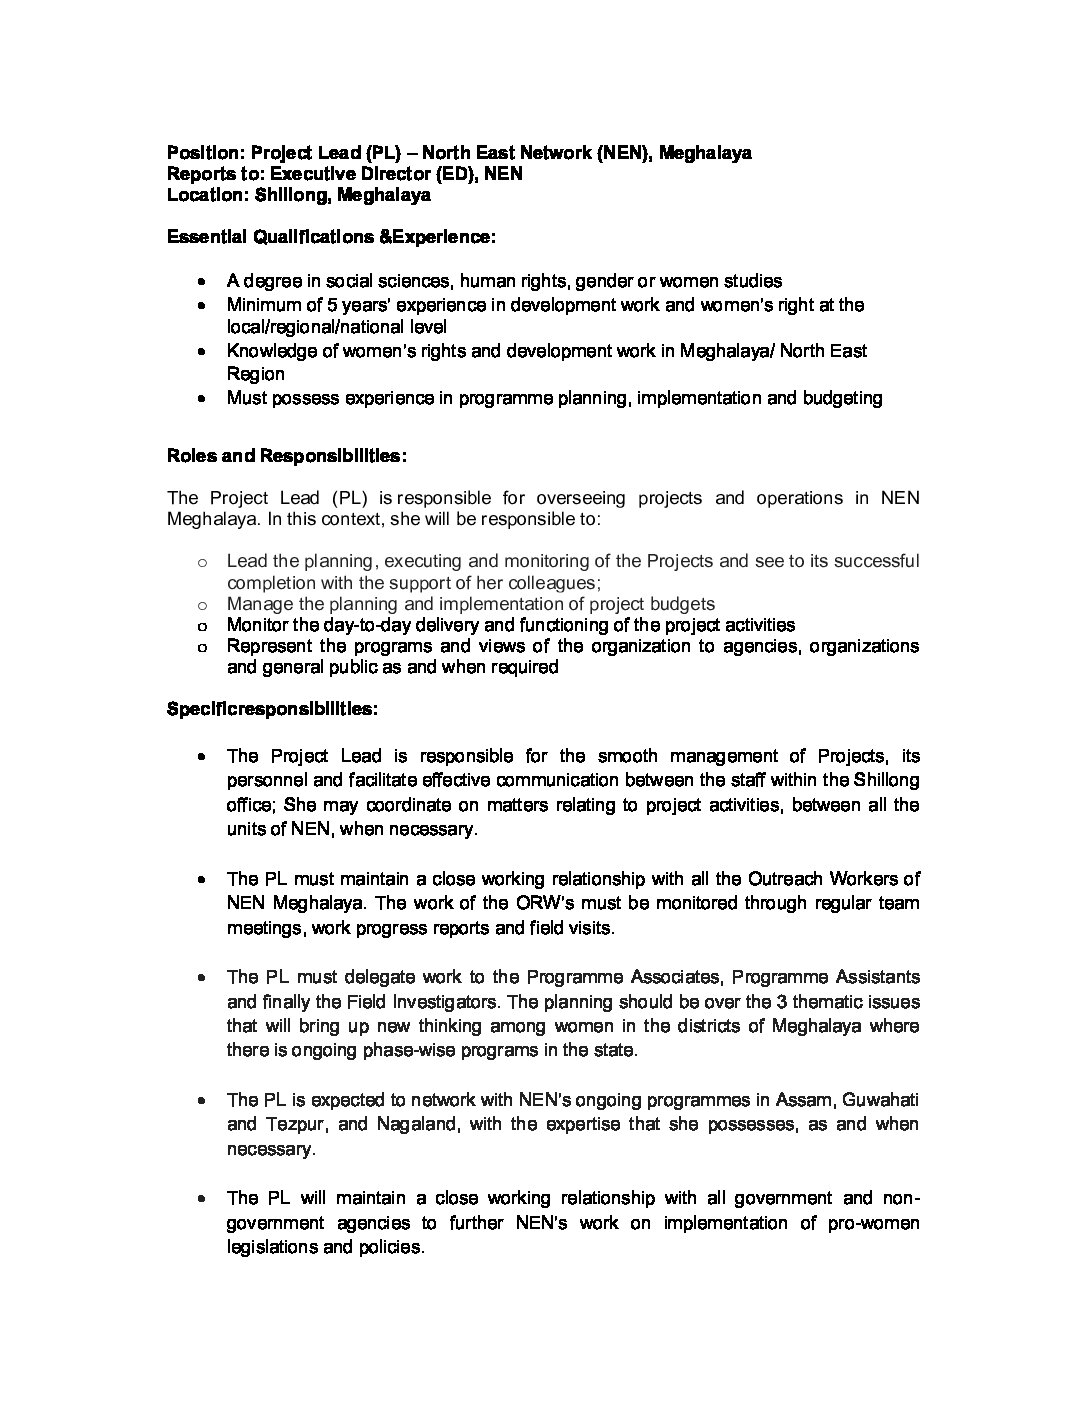 Jobs-in-Shillong-North-East-Network-@Project-Lead-Vacancy